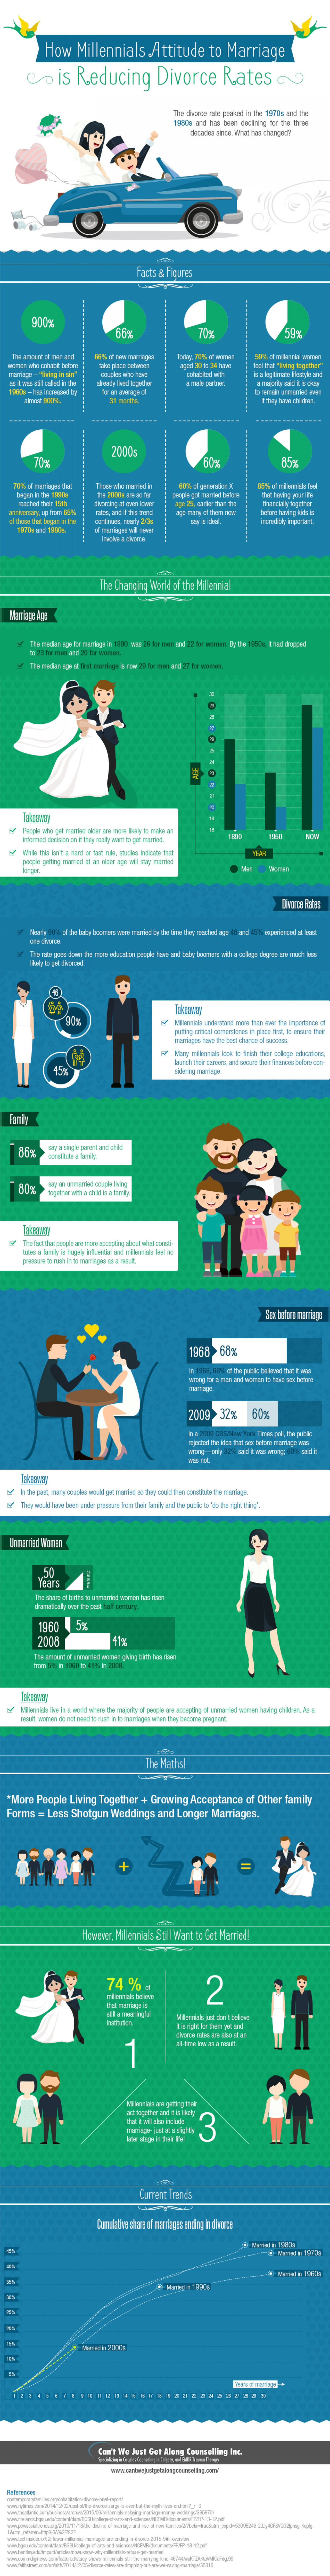 How Millennials Attitude to Marriage is Reducing Divorce Rates